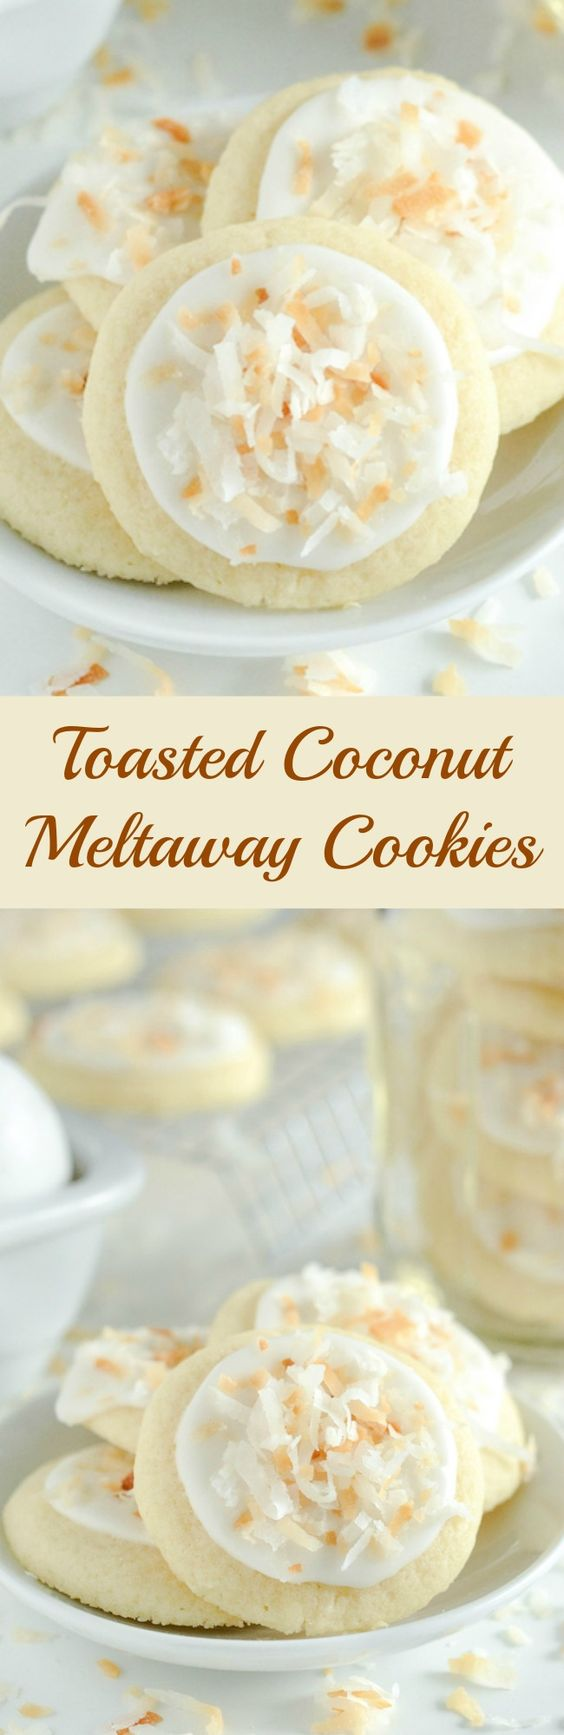 ... coconut shortbread cookie topped with royal icing and toasted coconut